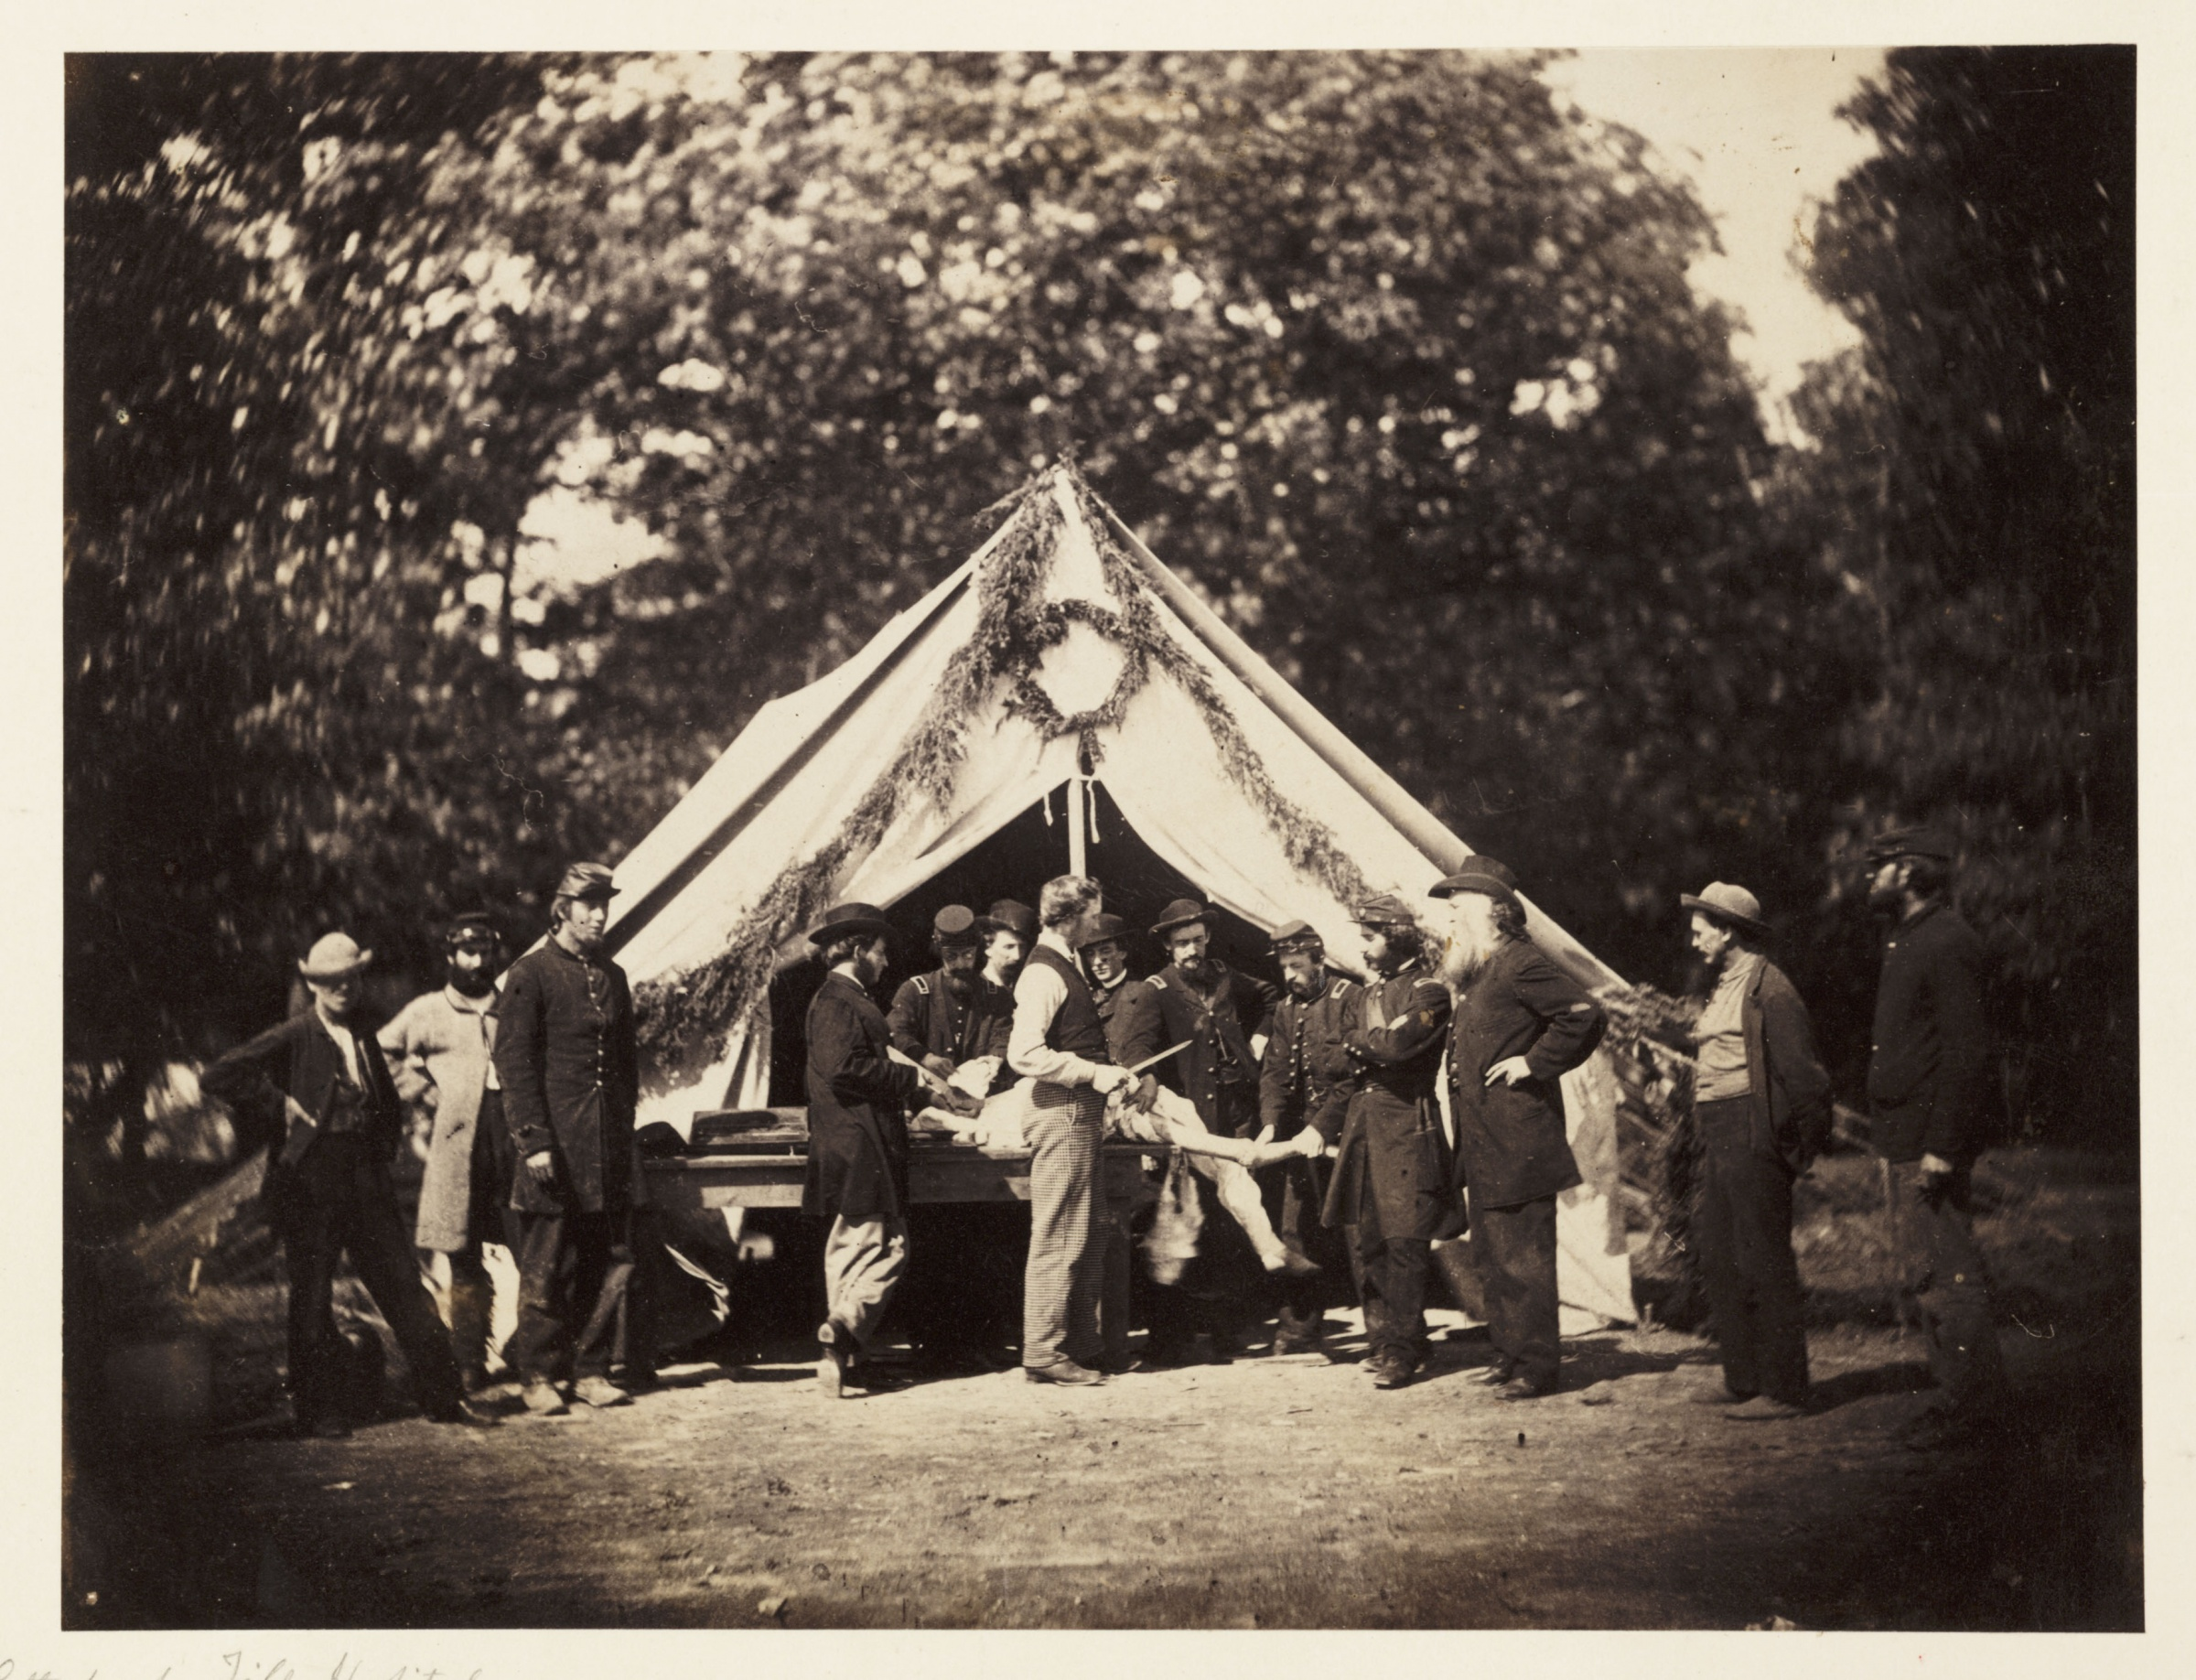 A20Union20Army20hospital20tent20on20the20battlefield20at20Gettysburg2C20July201863.20An20injured20man20lies20on20a20table20while20the20surgeon20stands20nearby20with20a20knife-f931fac